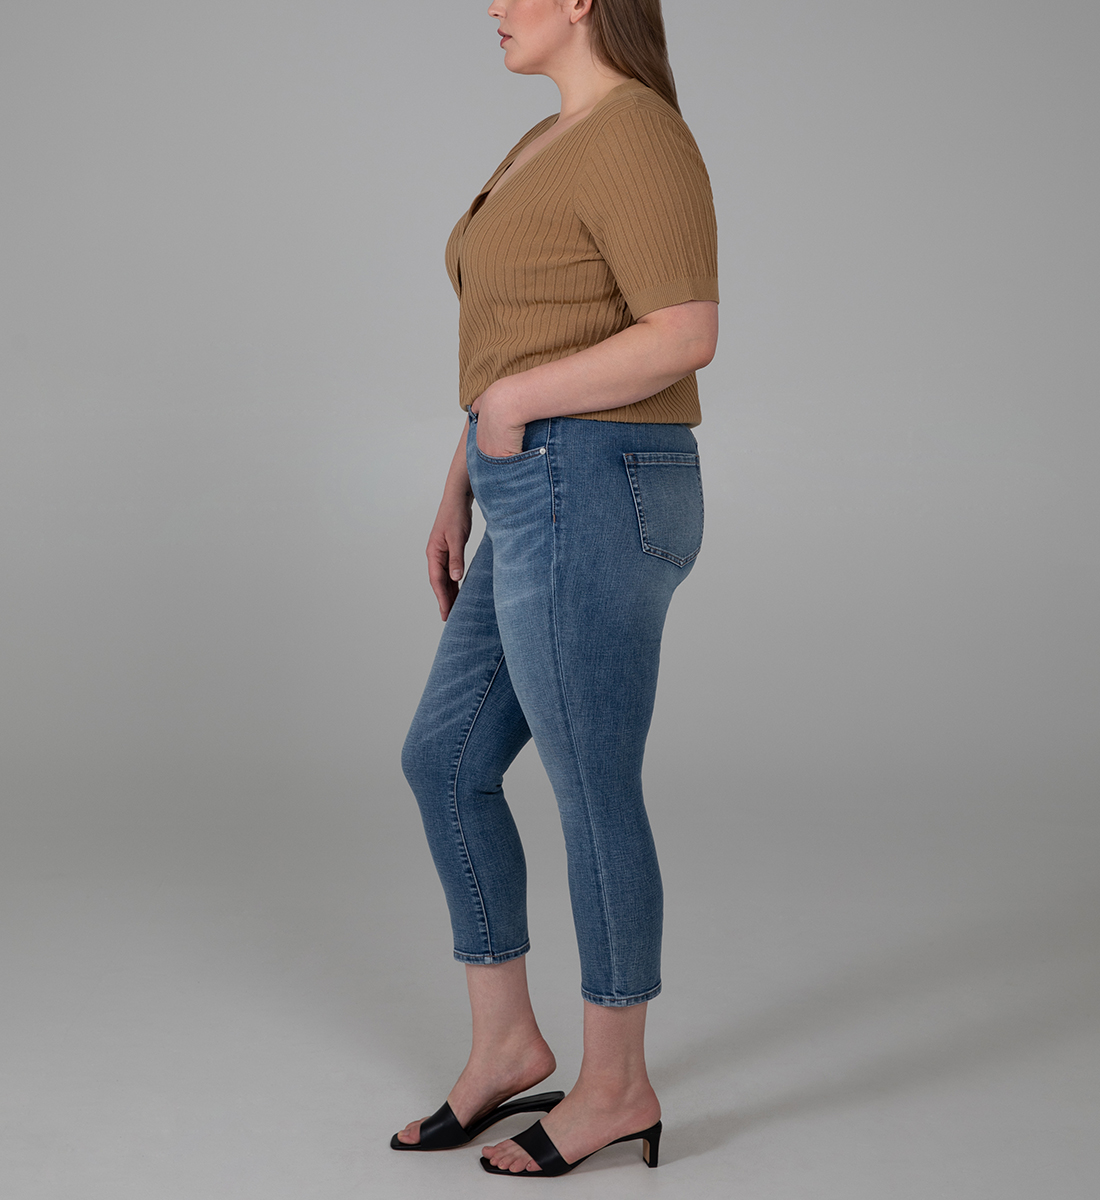 Valentina High Rise Crop Pull-On Jeans Plus Size, , hi-res